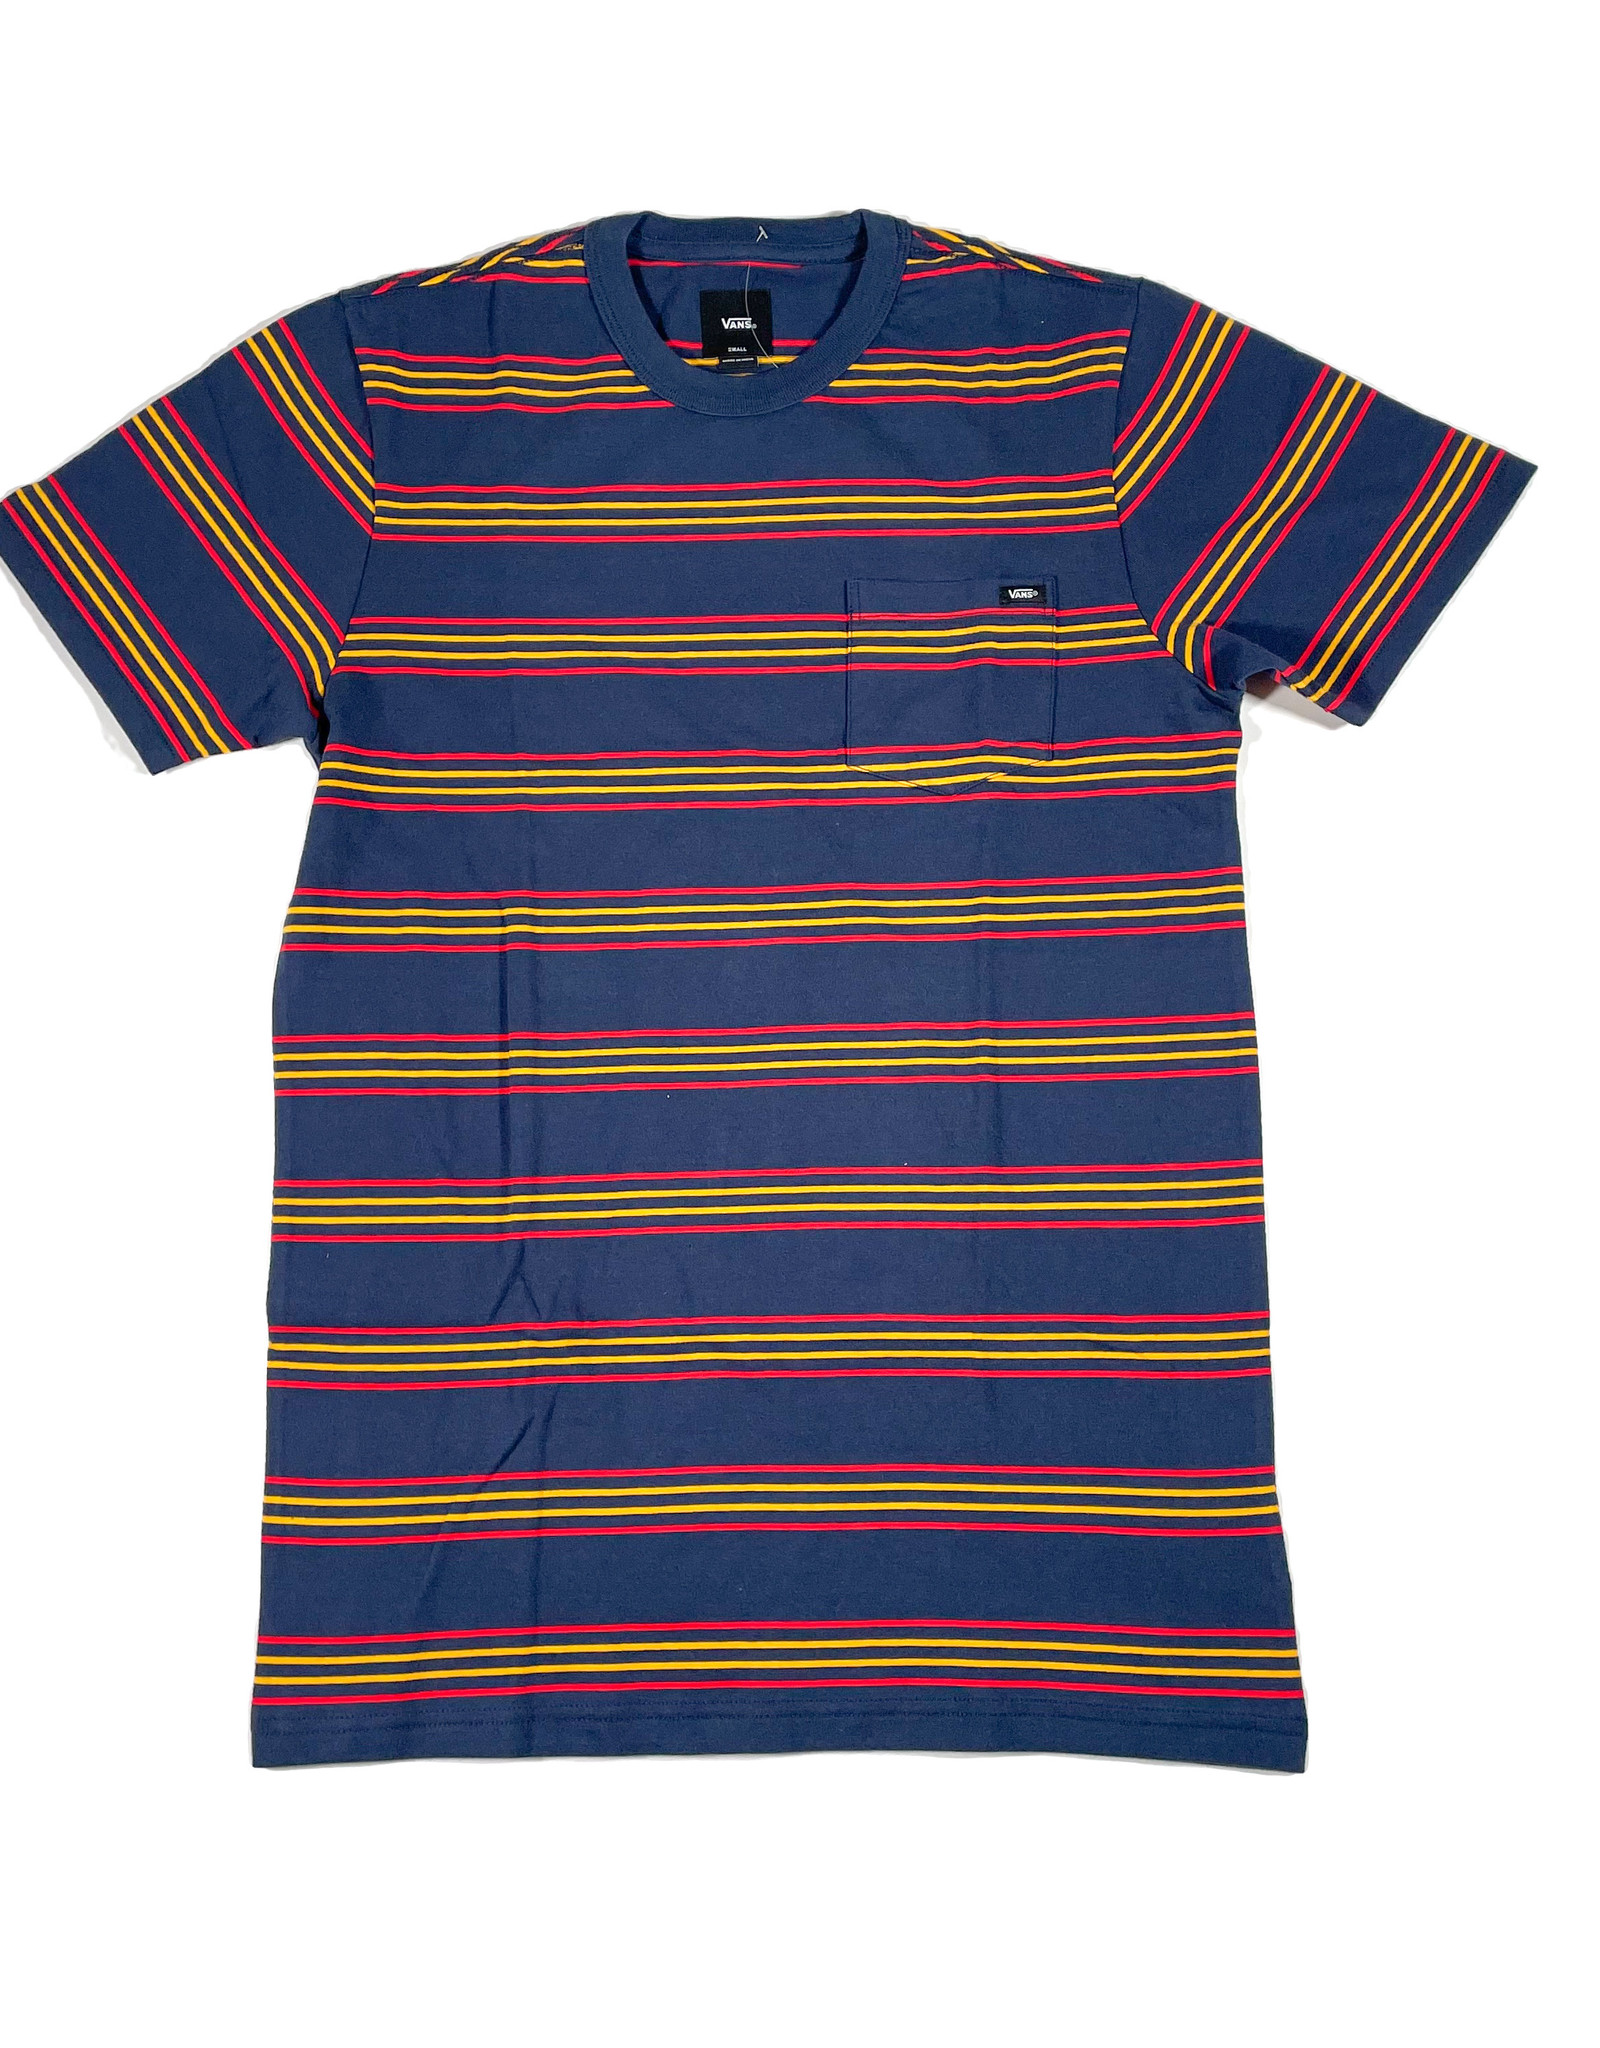 VANS VANS CHAPARRAL STRIPE SHIRT - DRESS BLUES